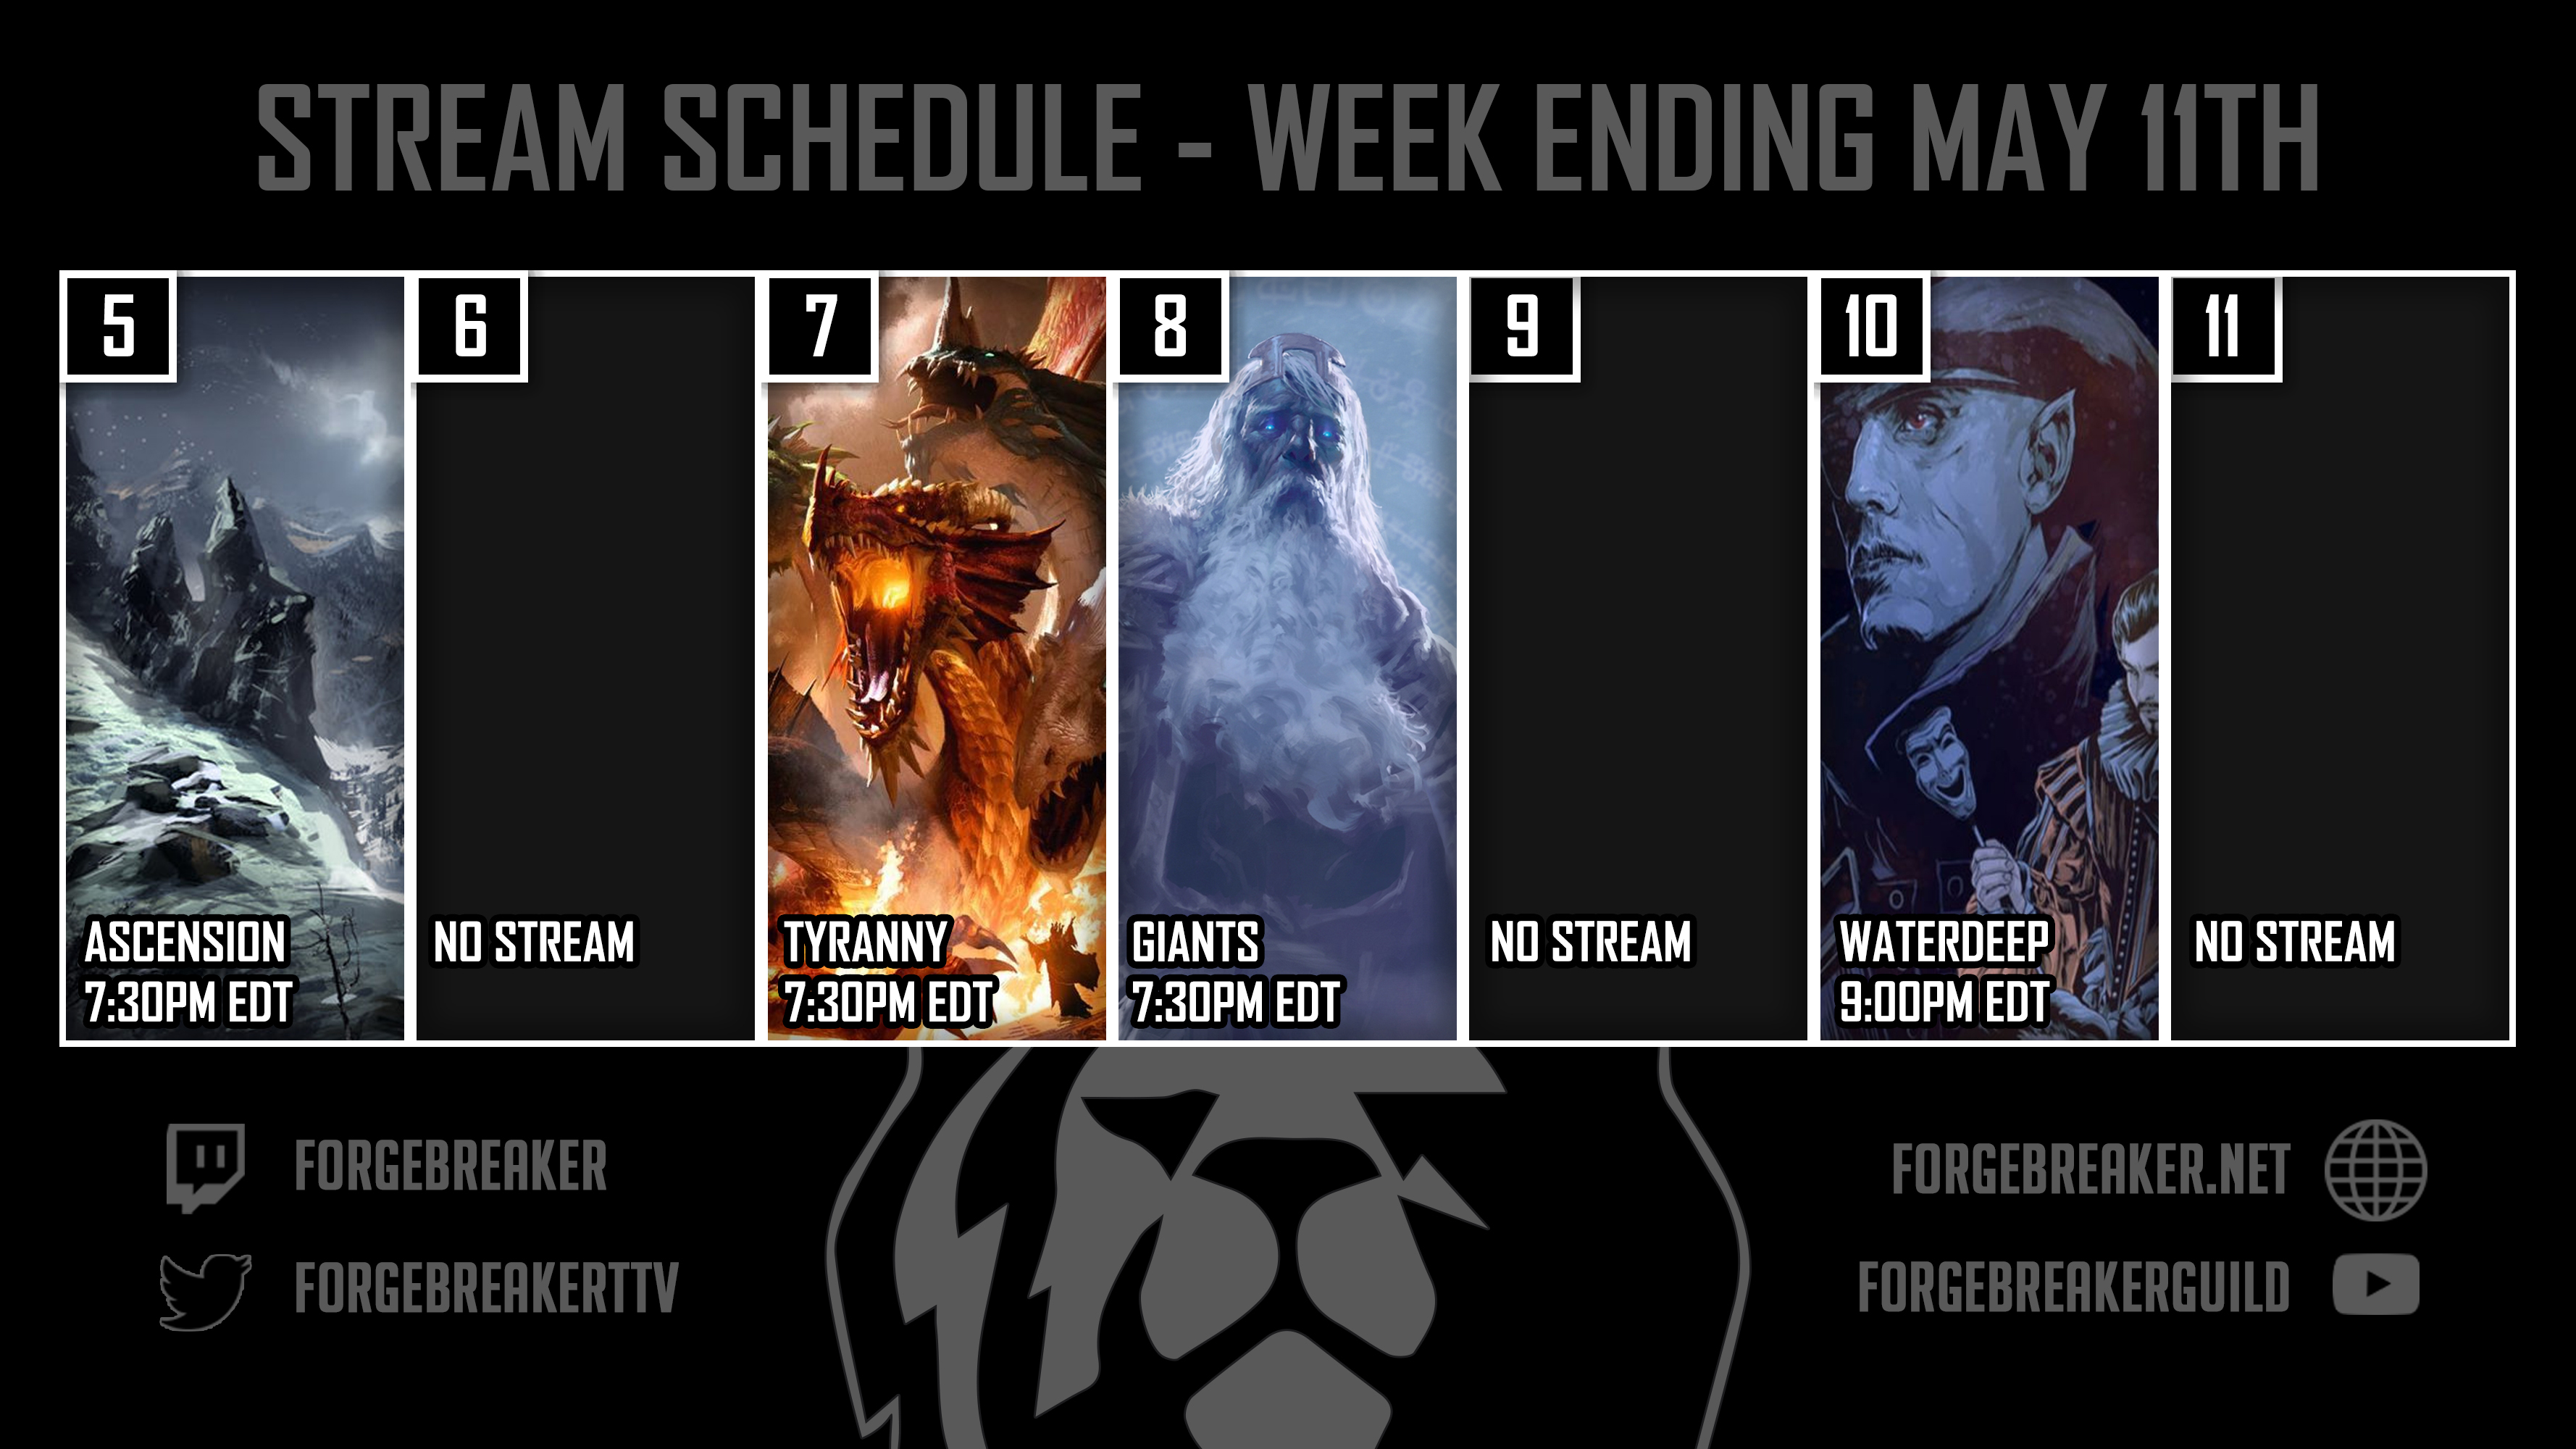 Schedule W/E May 11th